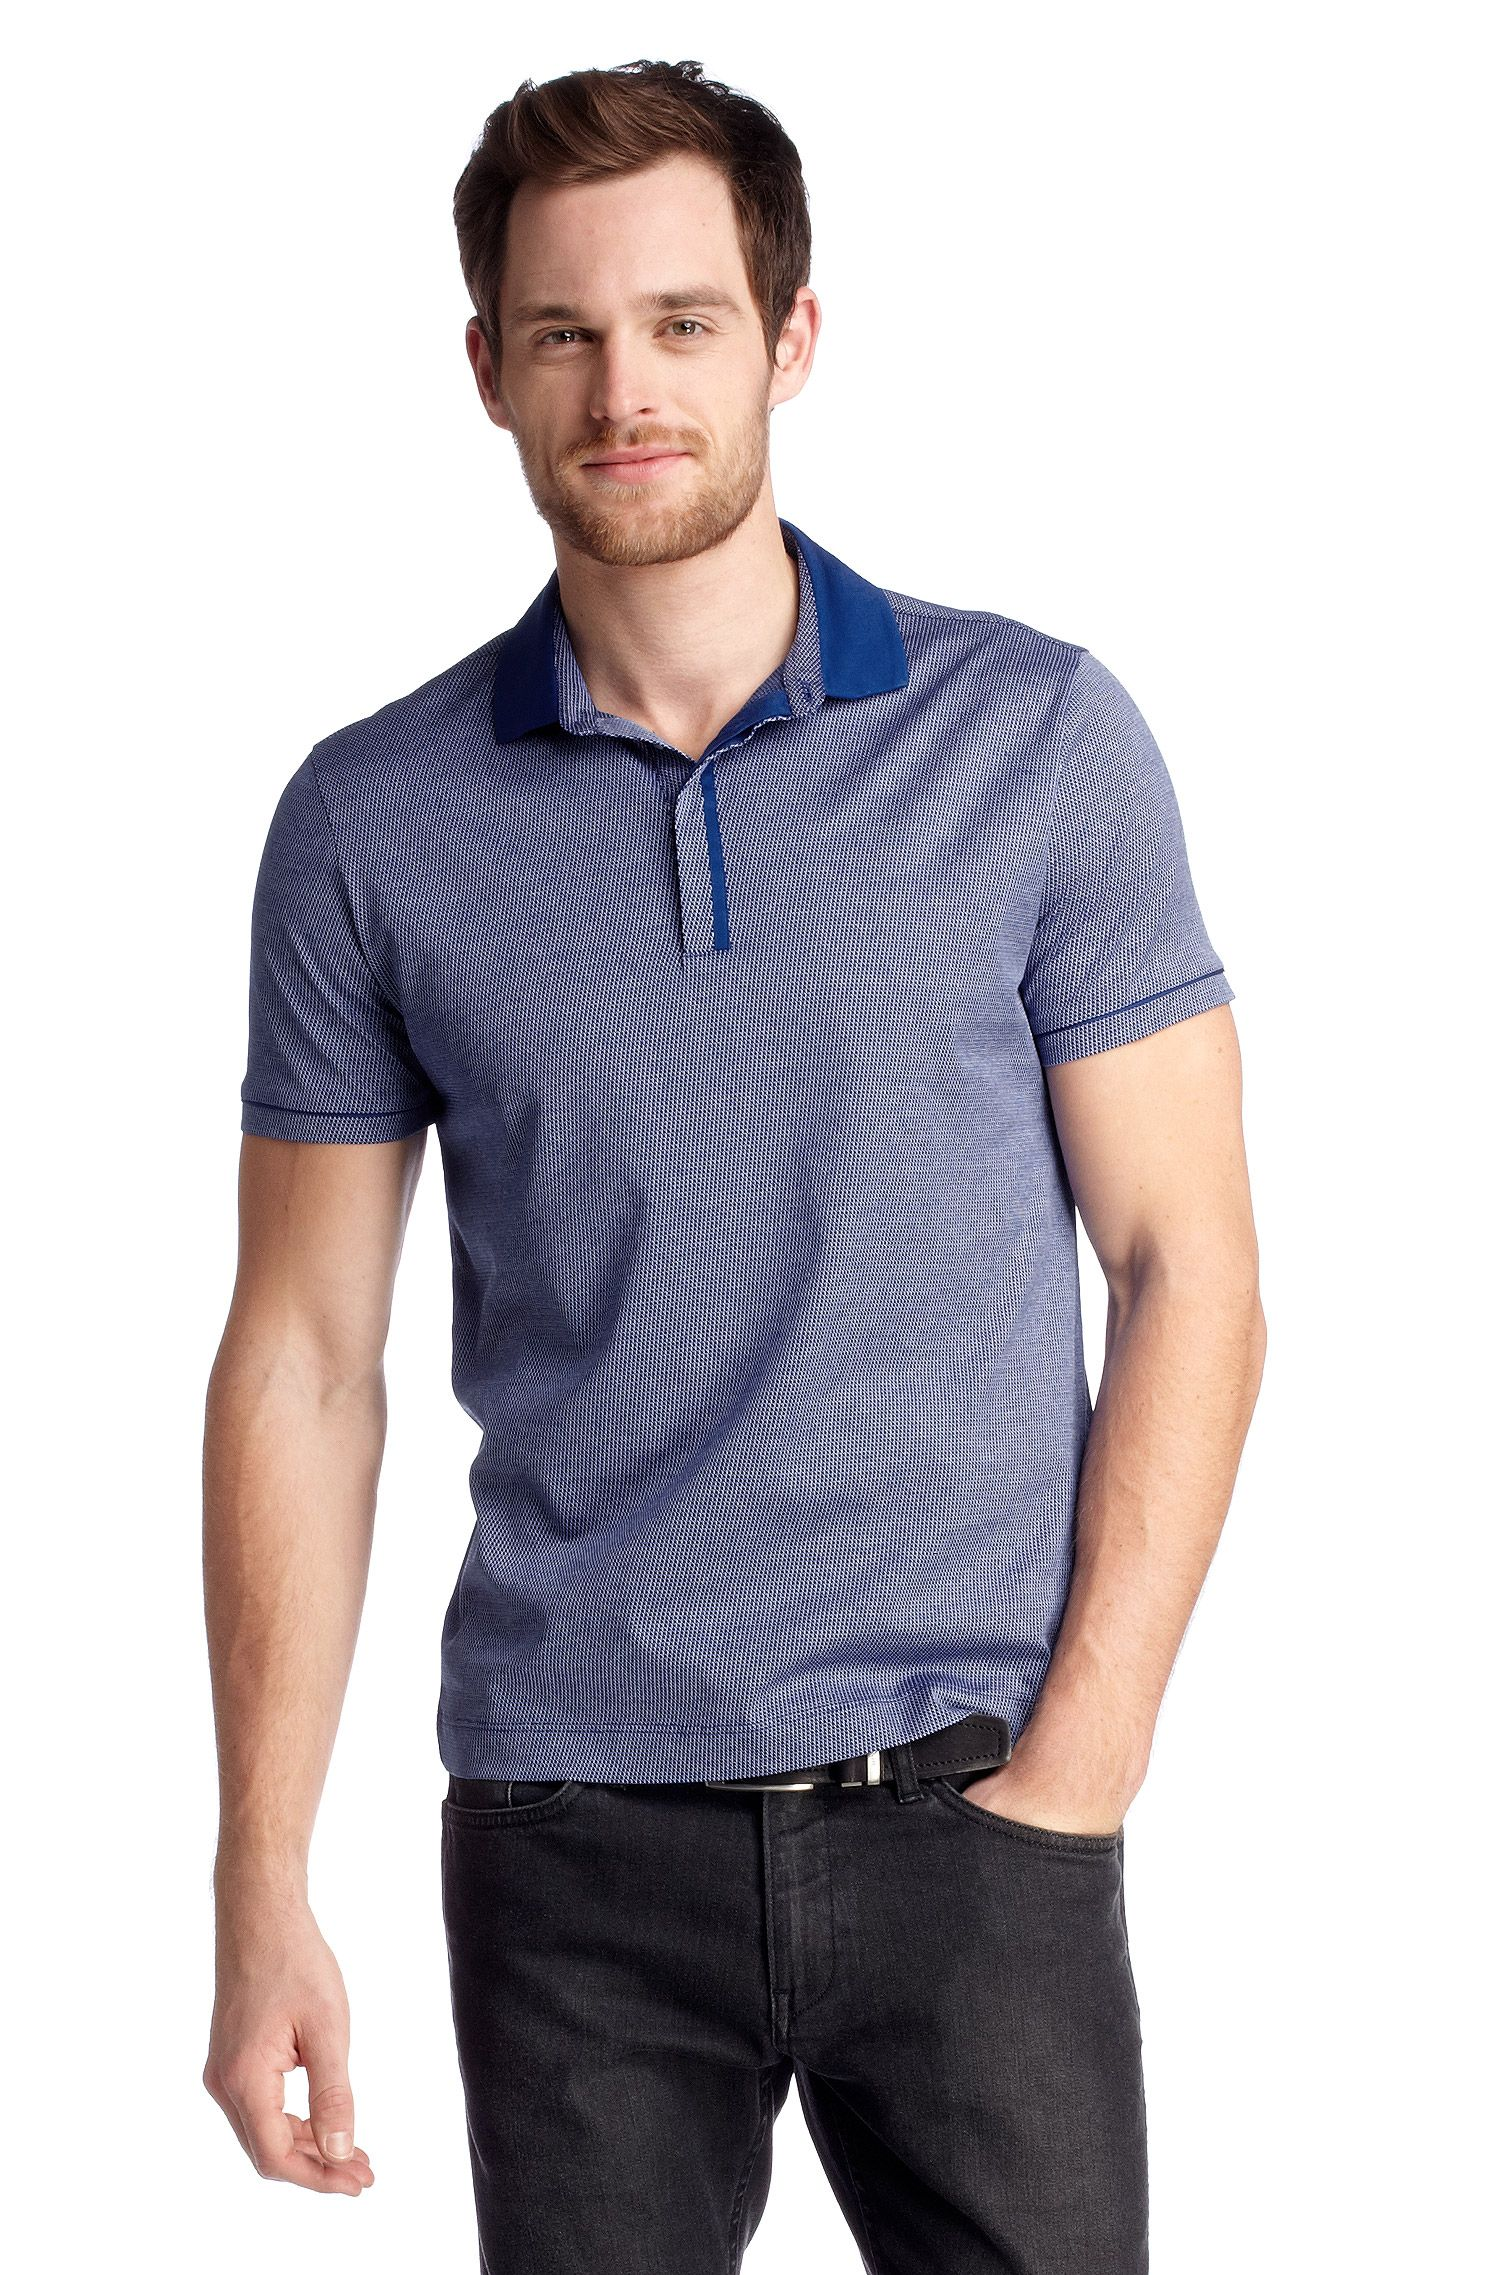 Regular-Fit Polo ´Bellano 08` mit Allover-Muster